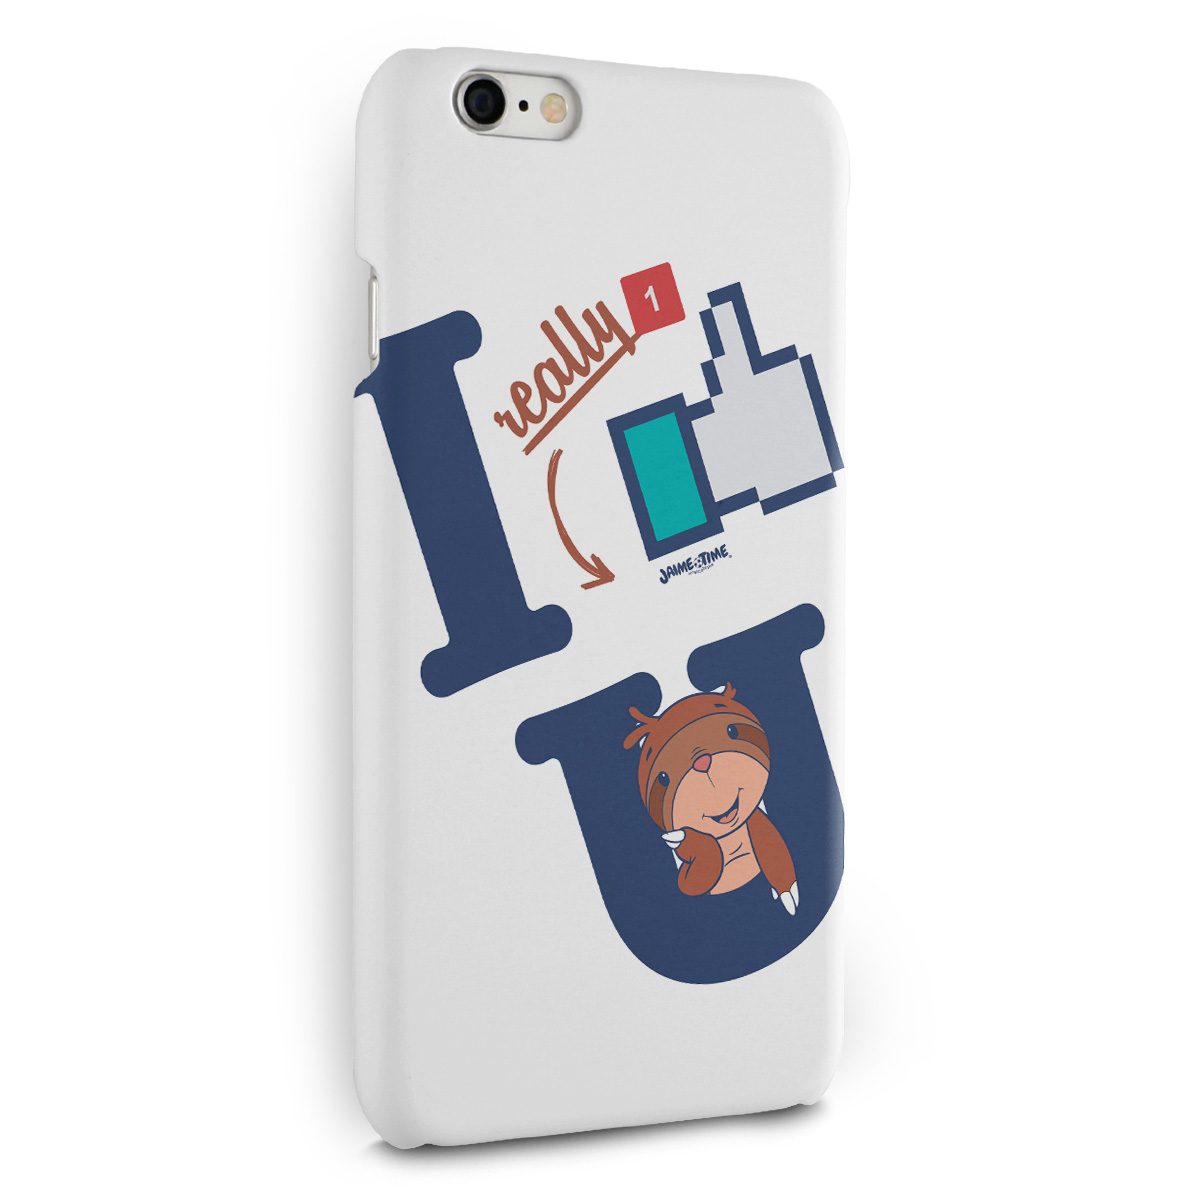 Capa para iPhone 6/6S Plus Jaime I Like You